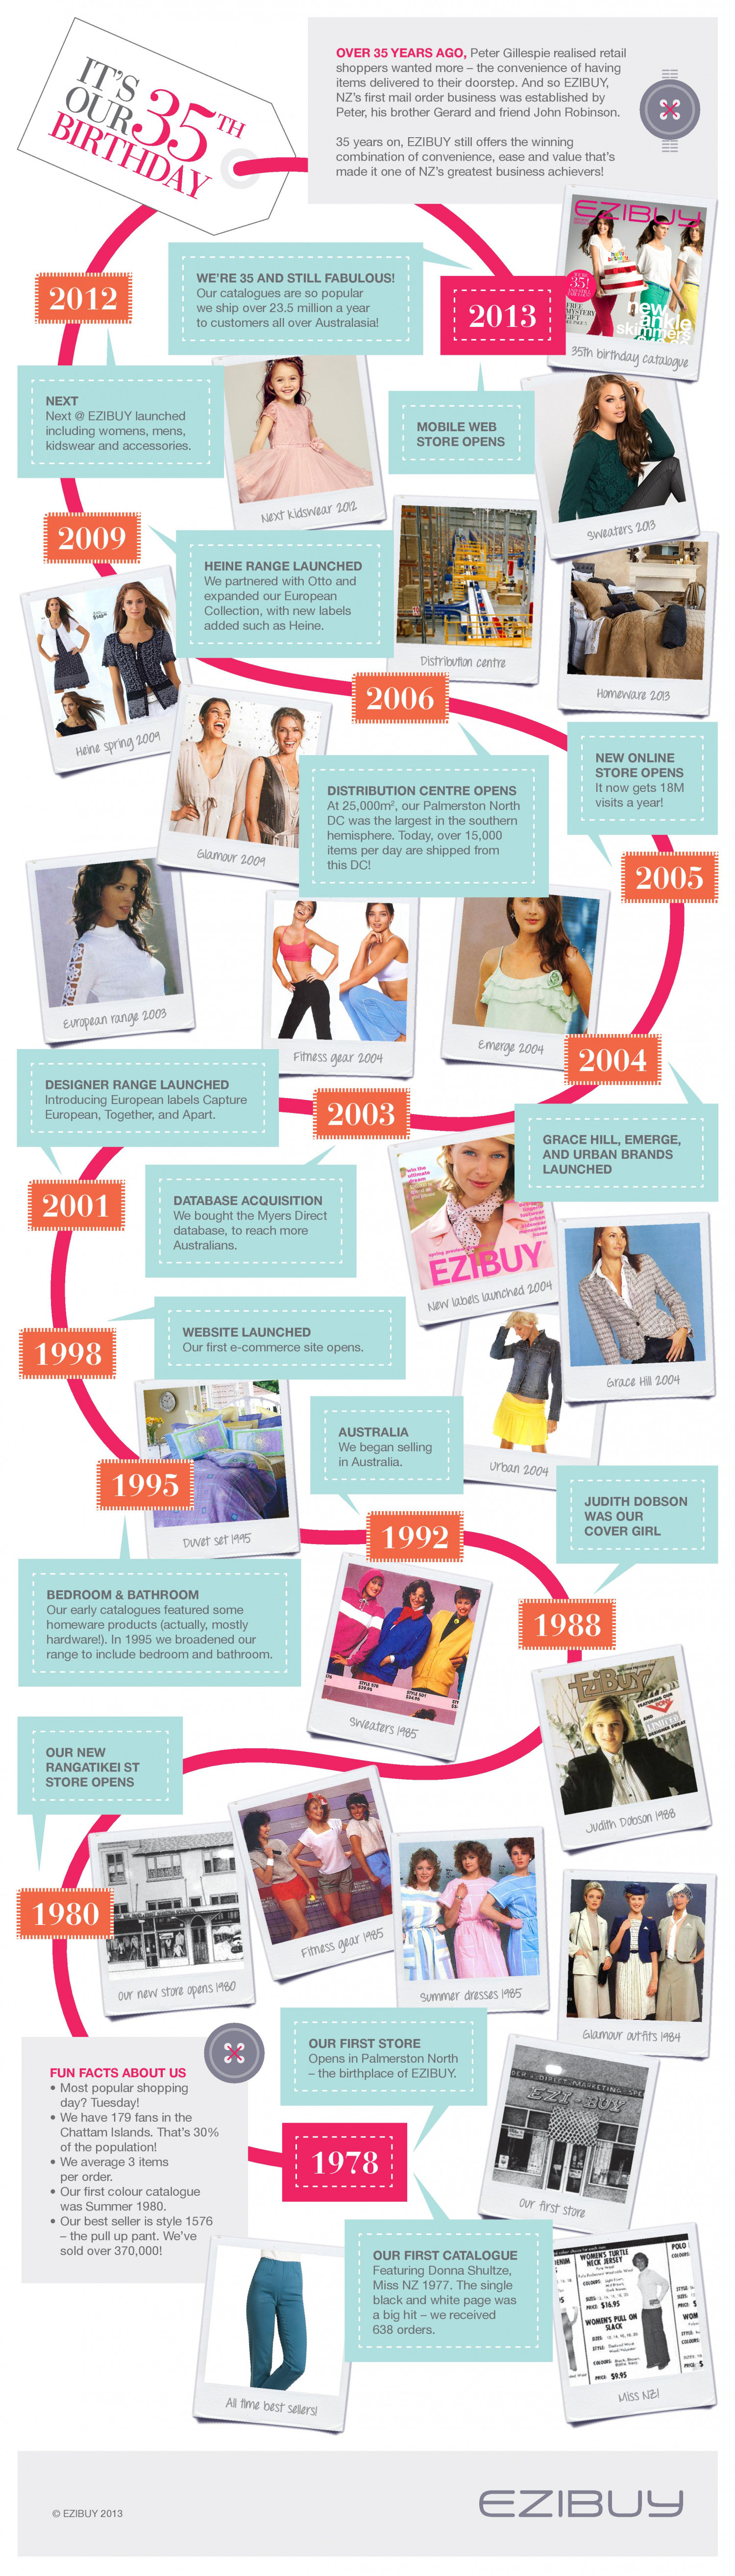 How a NZ Fashion Clothing Store Evolved - A 35 Years Story ! Infographic